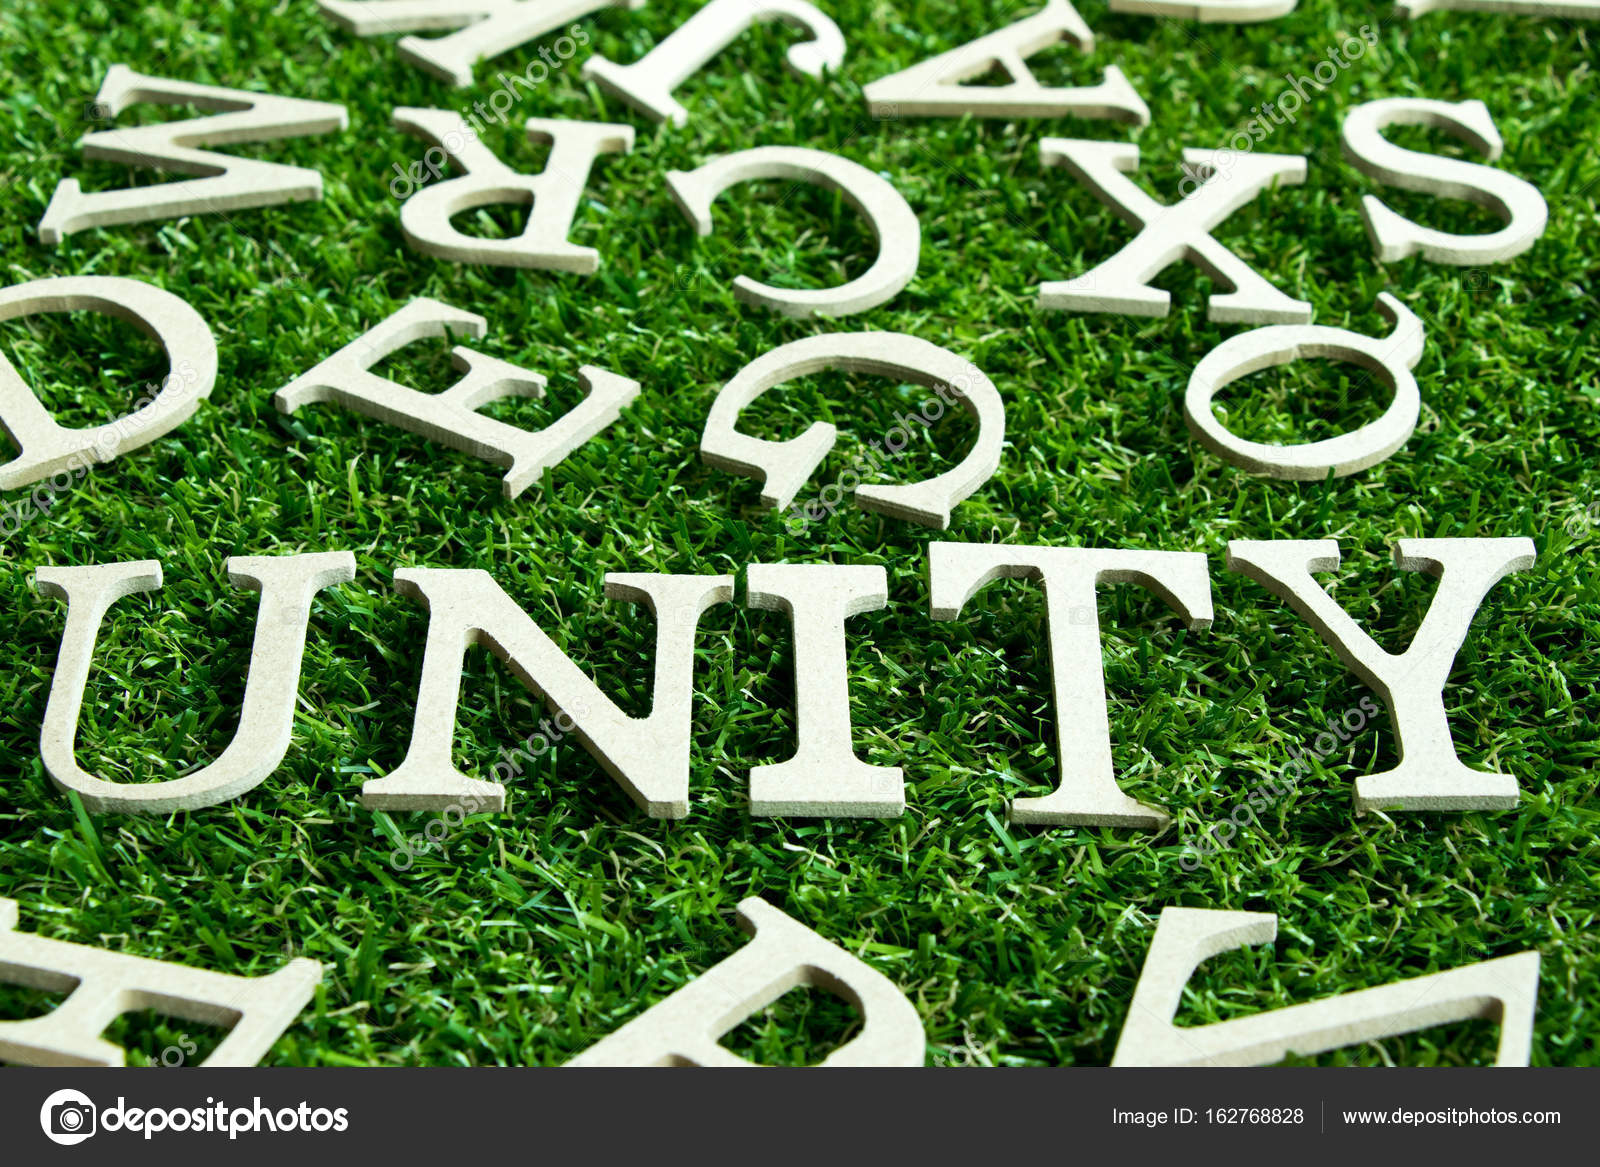 Wording unity on artificial green grass background with